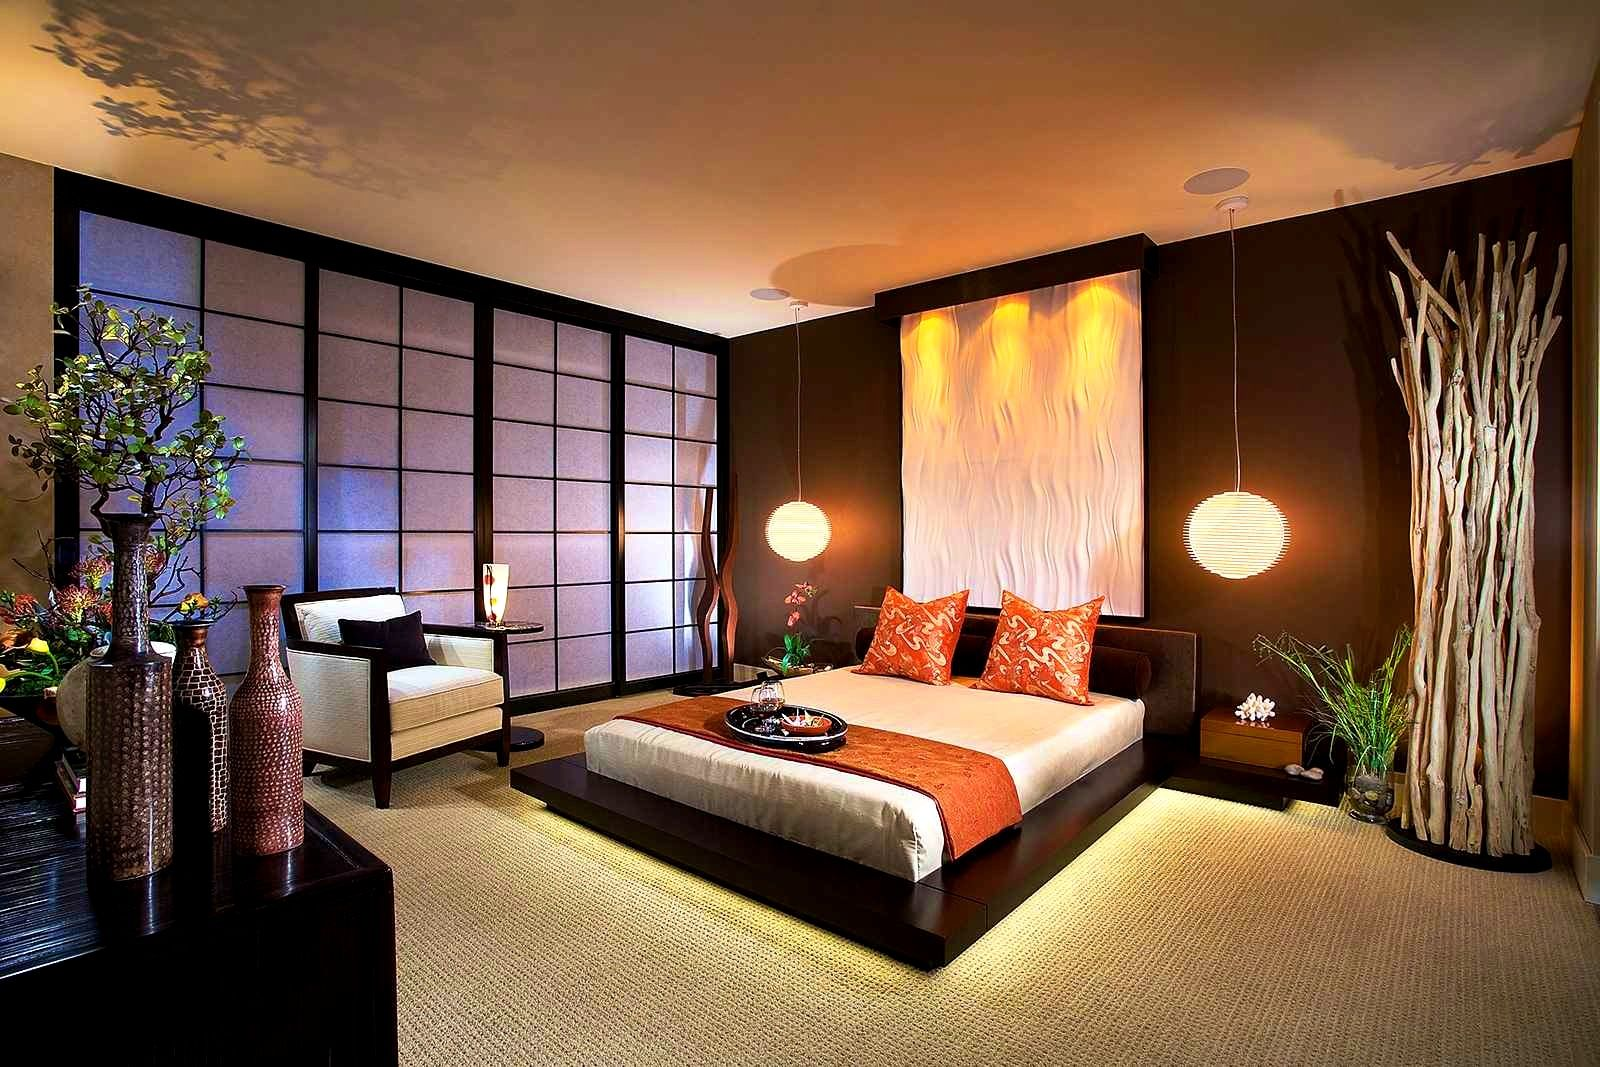 Bathroom Inspiring Five Great Bedroom Themes For Your House Asian Themed Sets Brown Co Japanese Style Bedroom Japanese Inspired Bedroom Modern Bedroom Interior